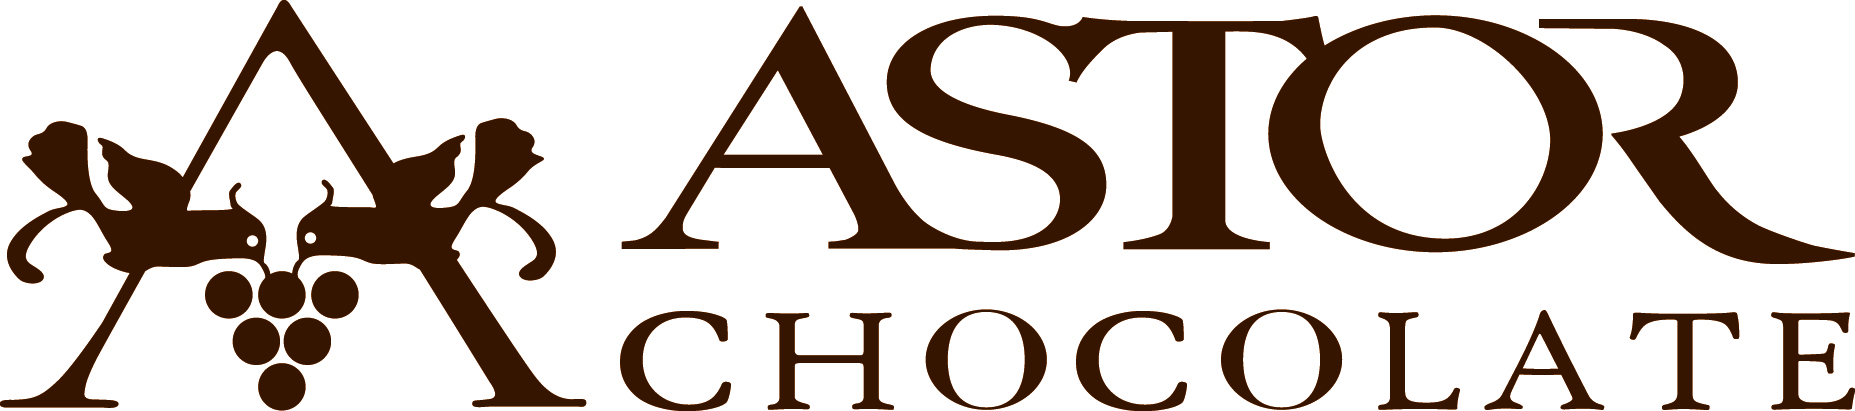 astor-chocolate-logo